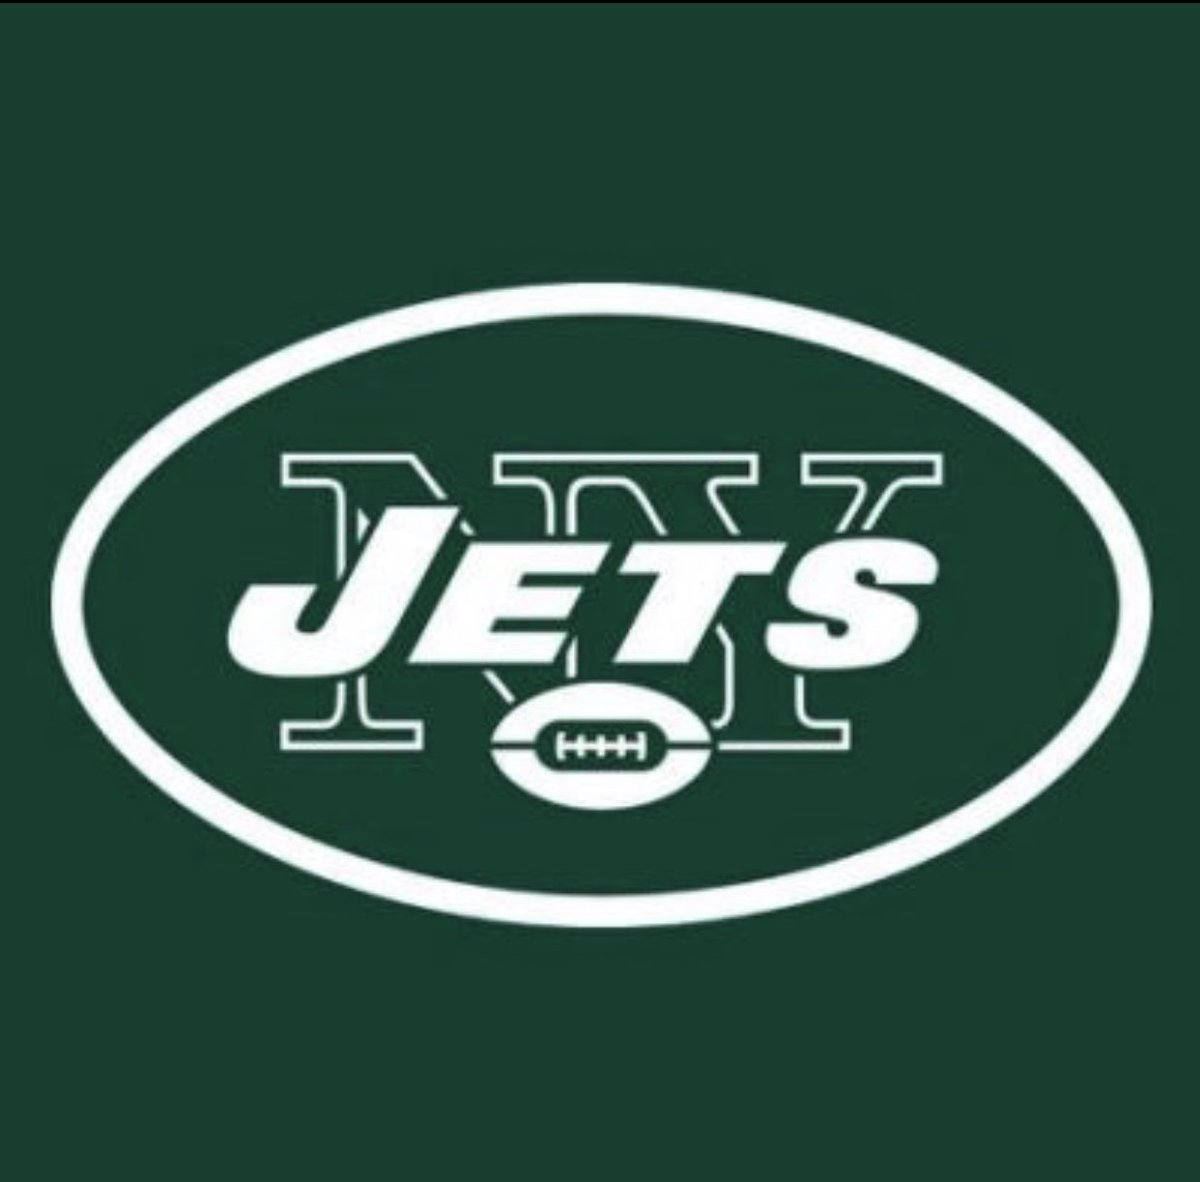 With that being said, I am excited to begin this unbelievable opportunity and start my journey as a member of the New York Jets organization! #🐻⬆️ #J-E-T-S